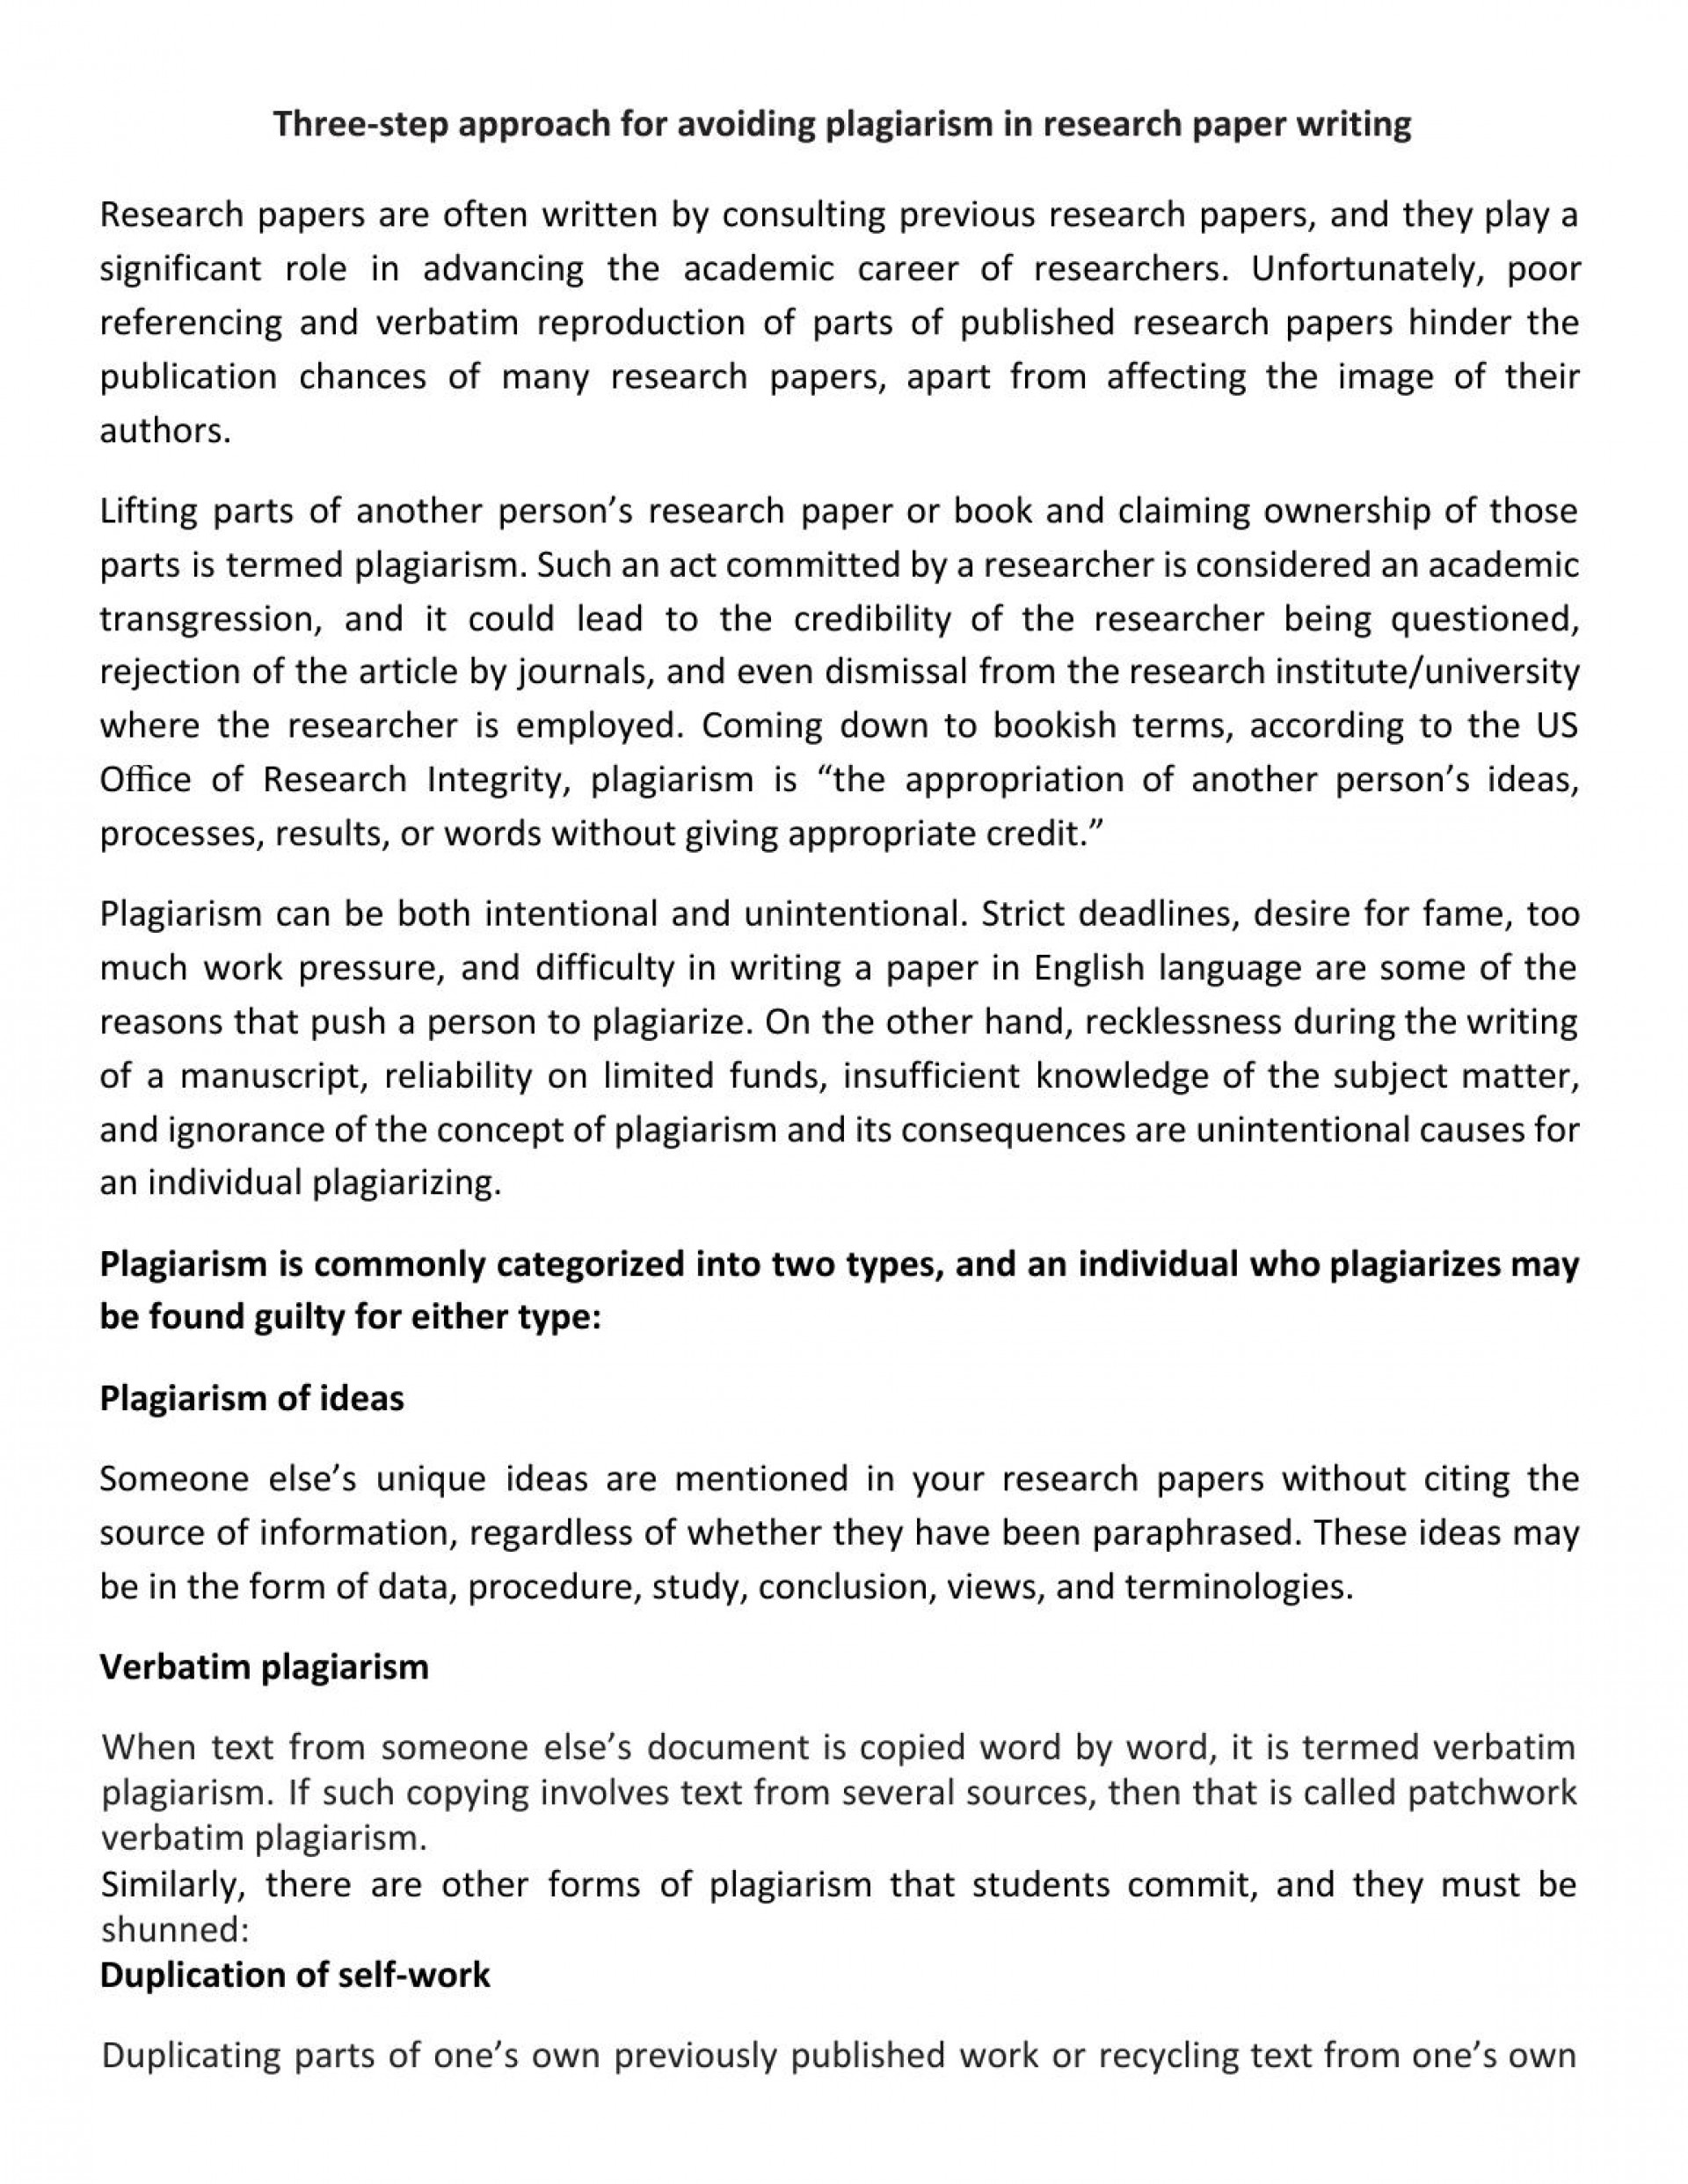 006 Page 1 How Do I Write Research Paper Without Wondrous A Plagiarizing To 1920